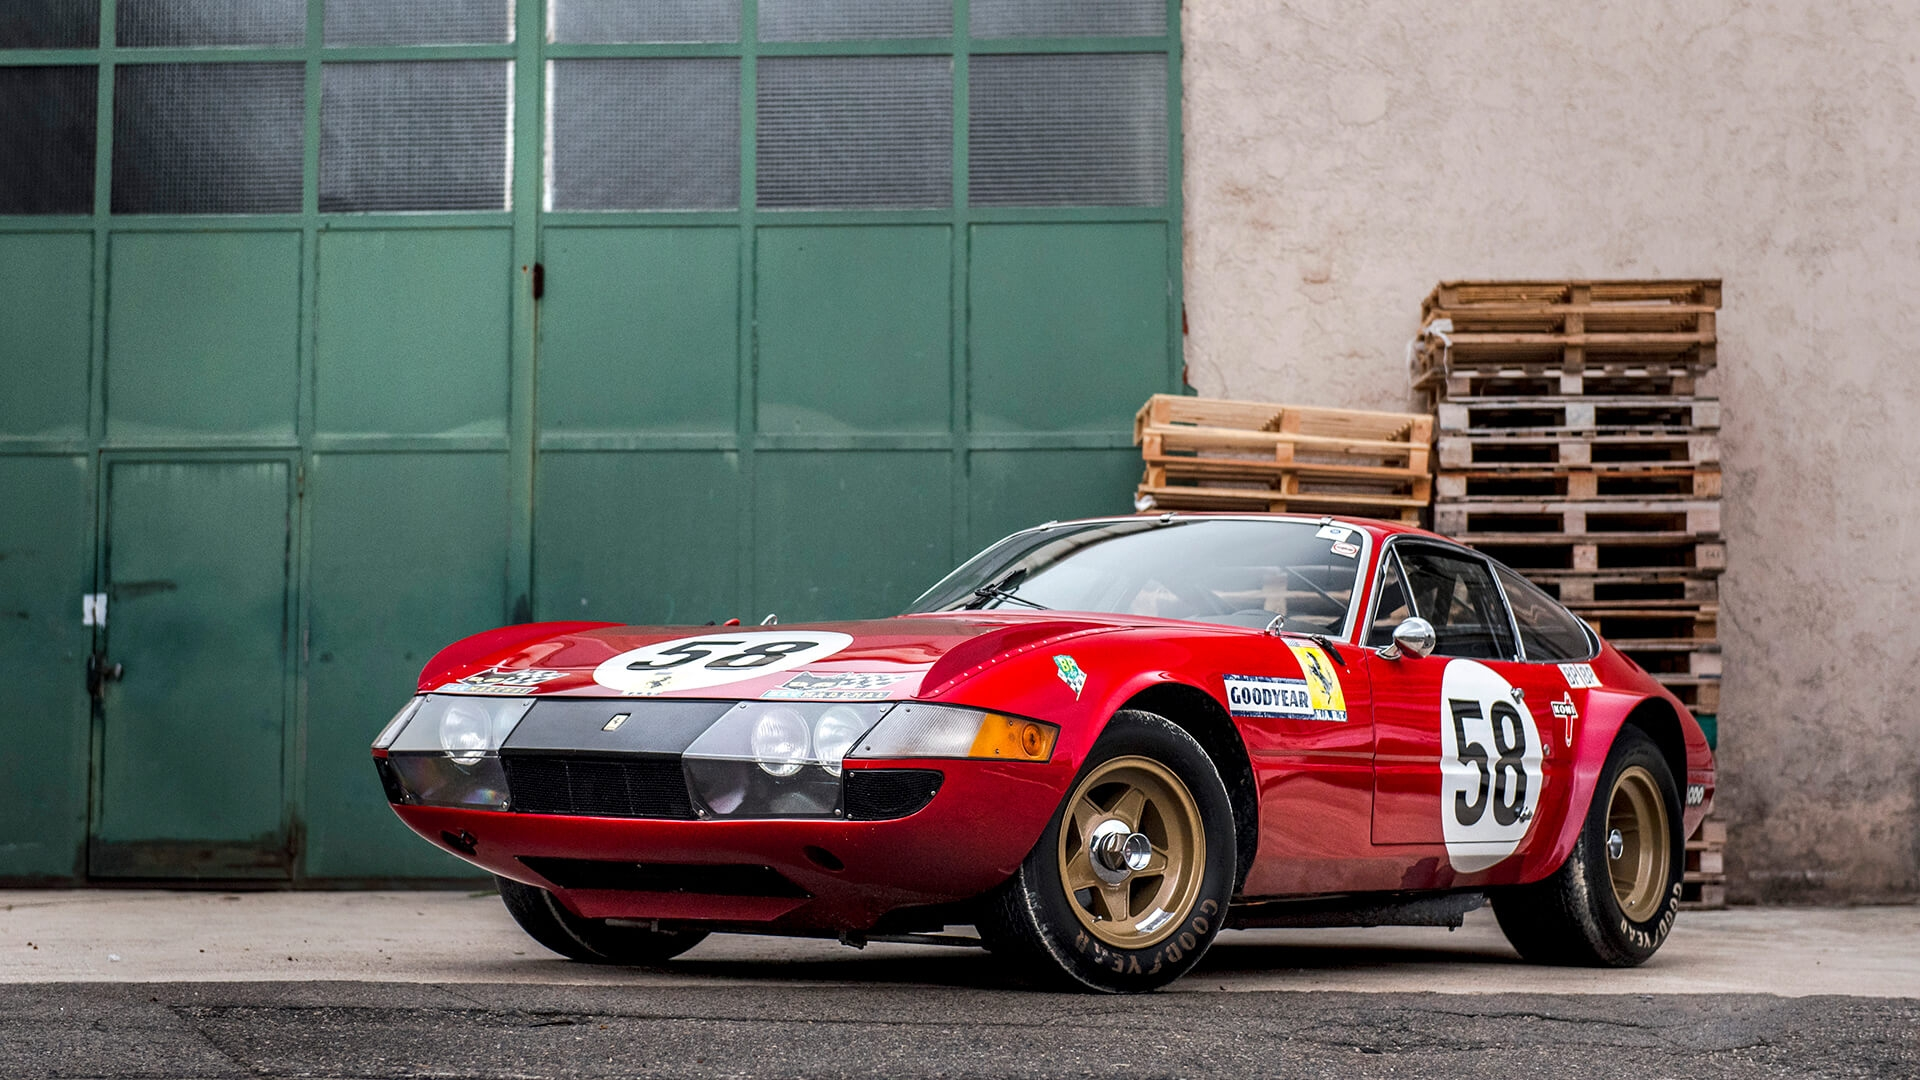 Third time lucky for ex-LM 'Daytona' at the Le Mans Classic sale?